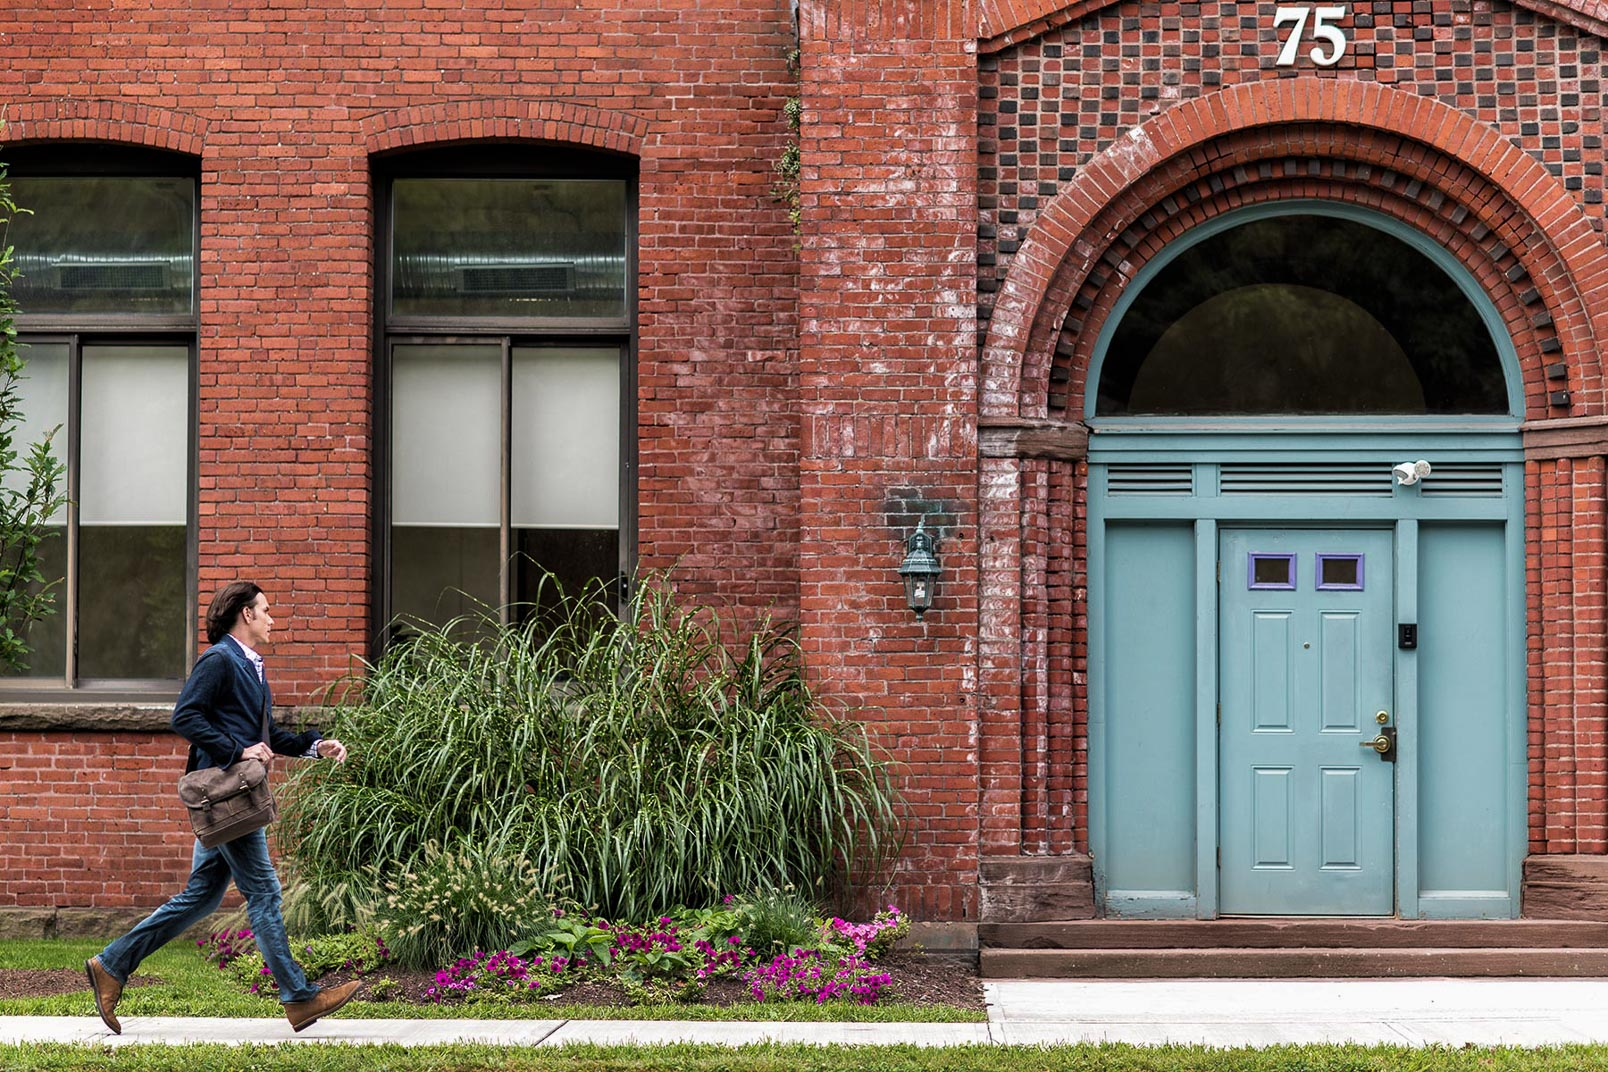 Man rushing to work at brick building with blue door in Hartford Connecticut